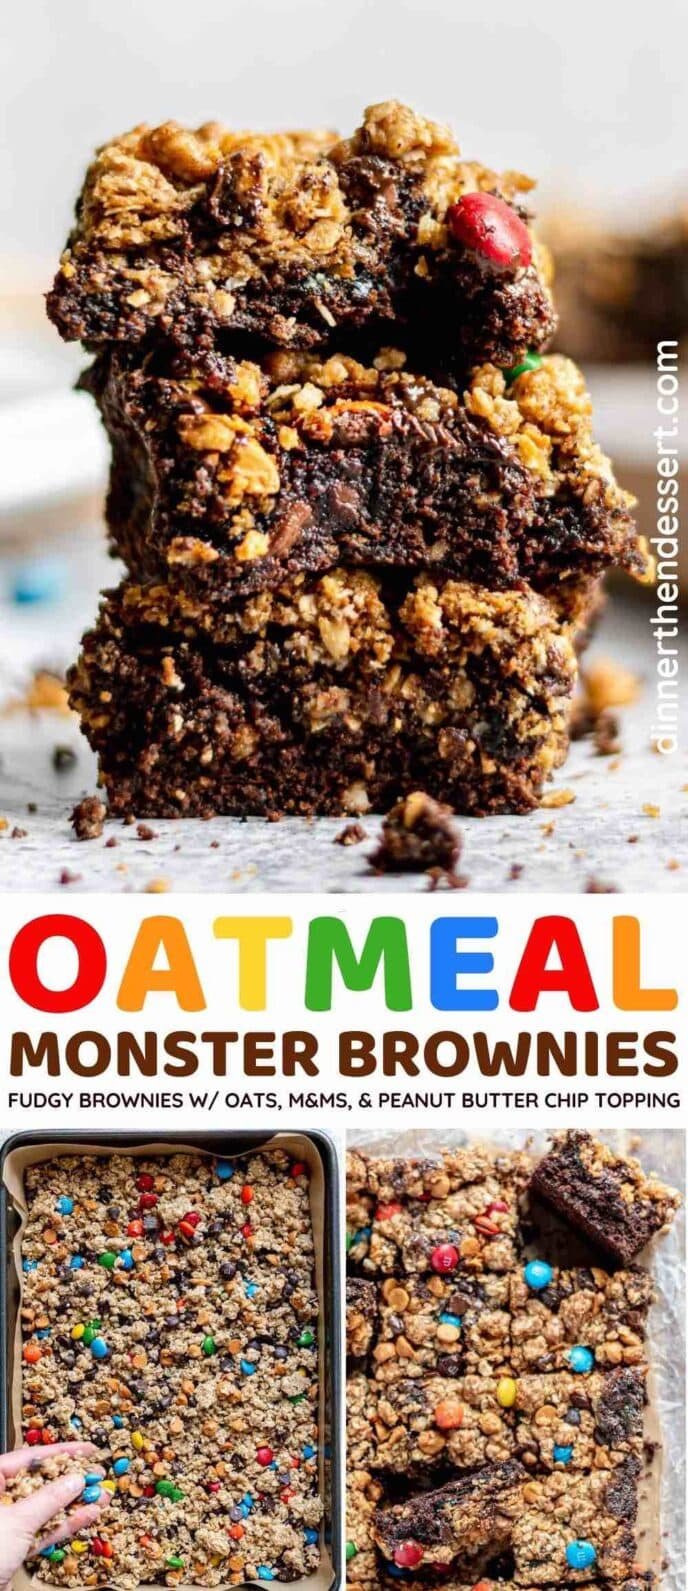 Oatmeal Monster Brownies collage